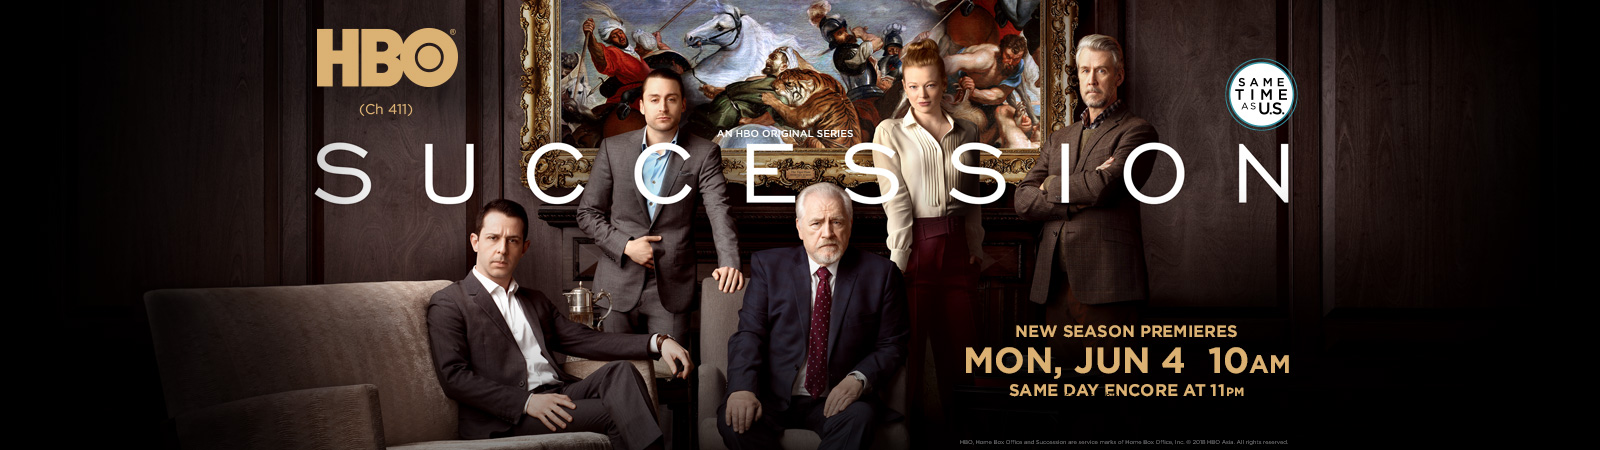 HBO - Succession  S2